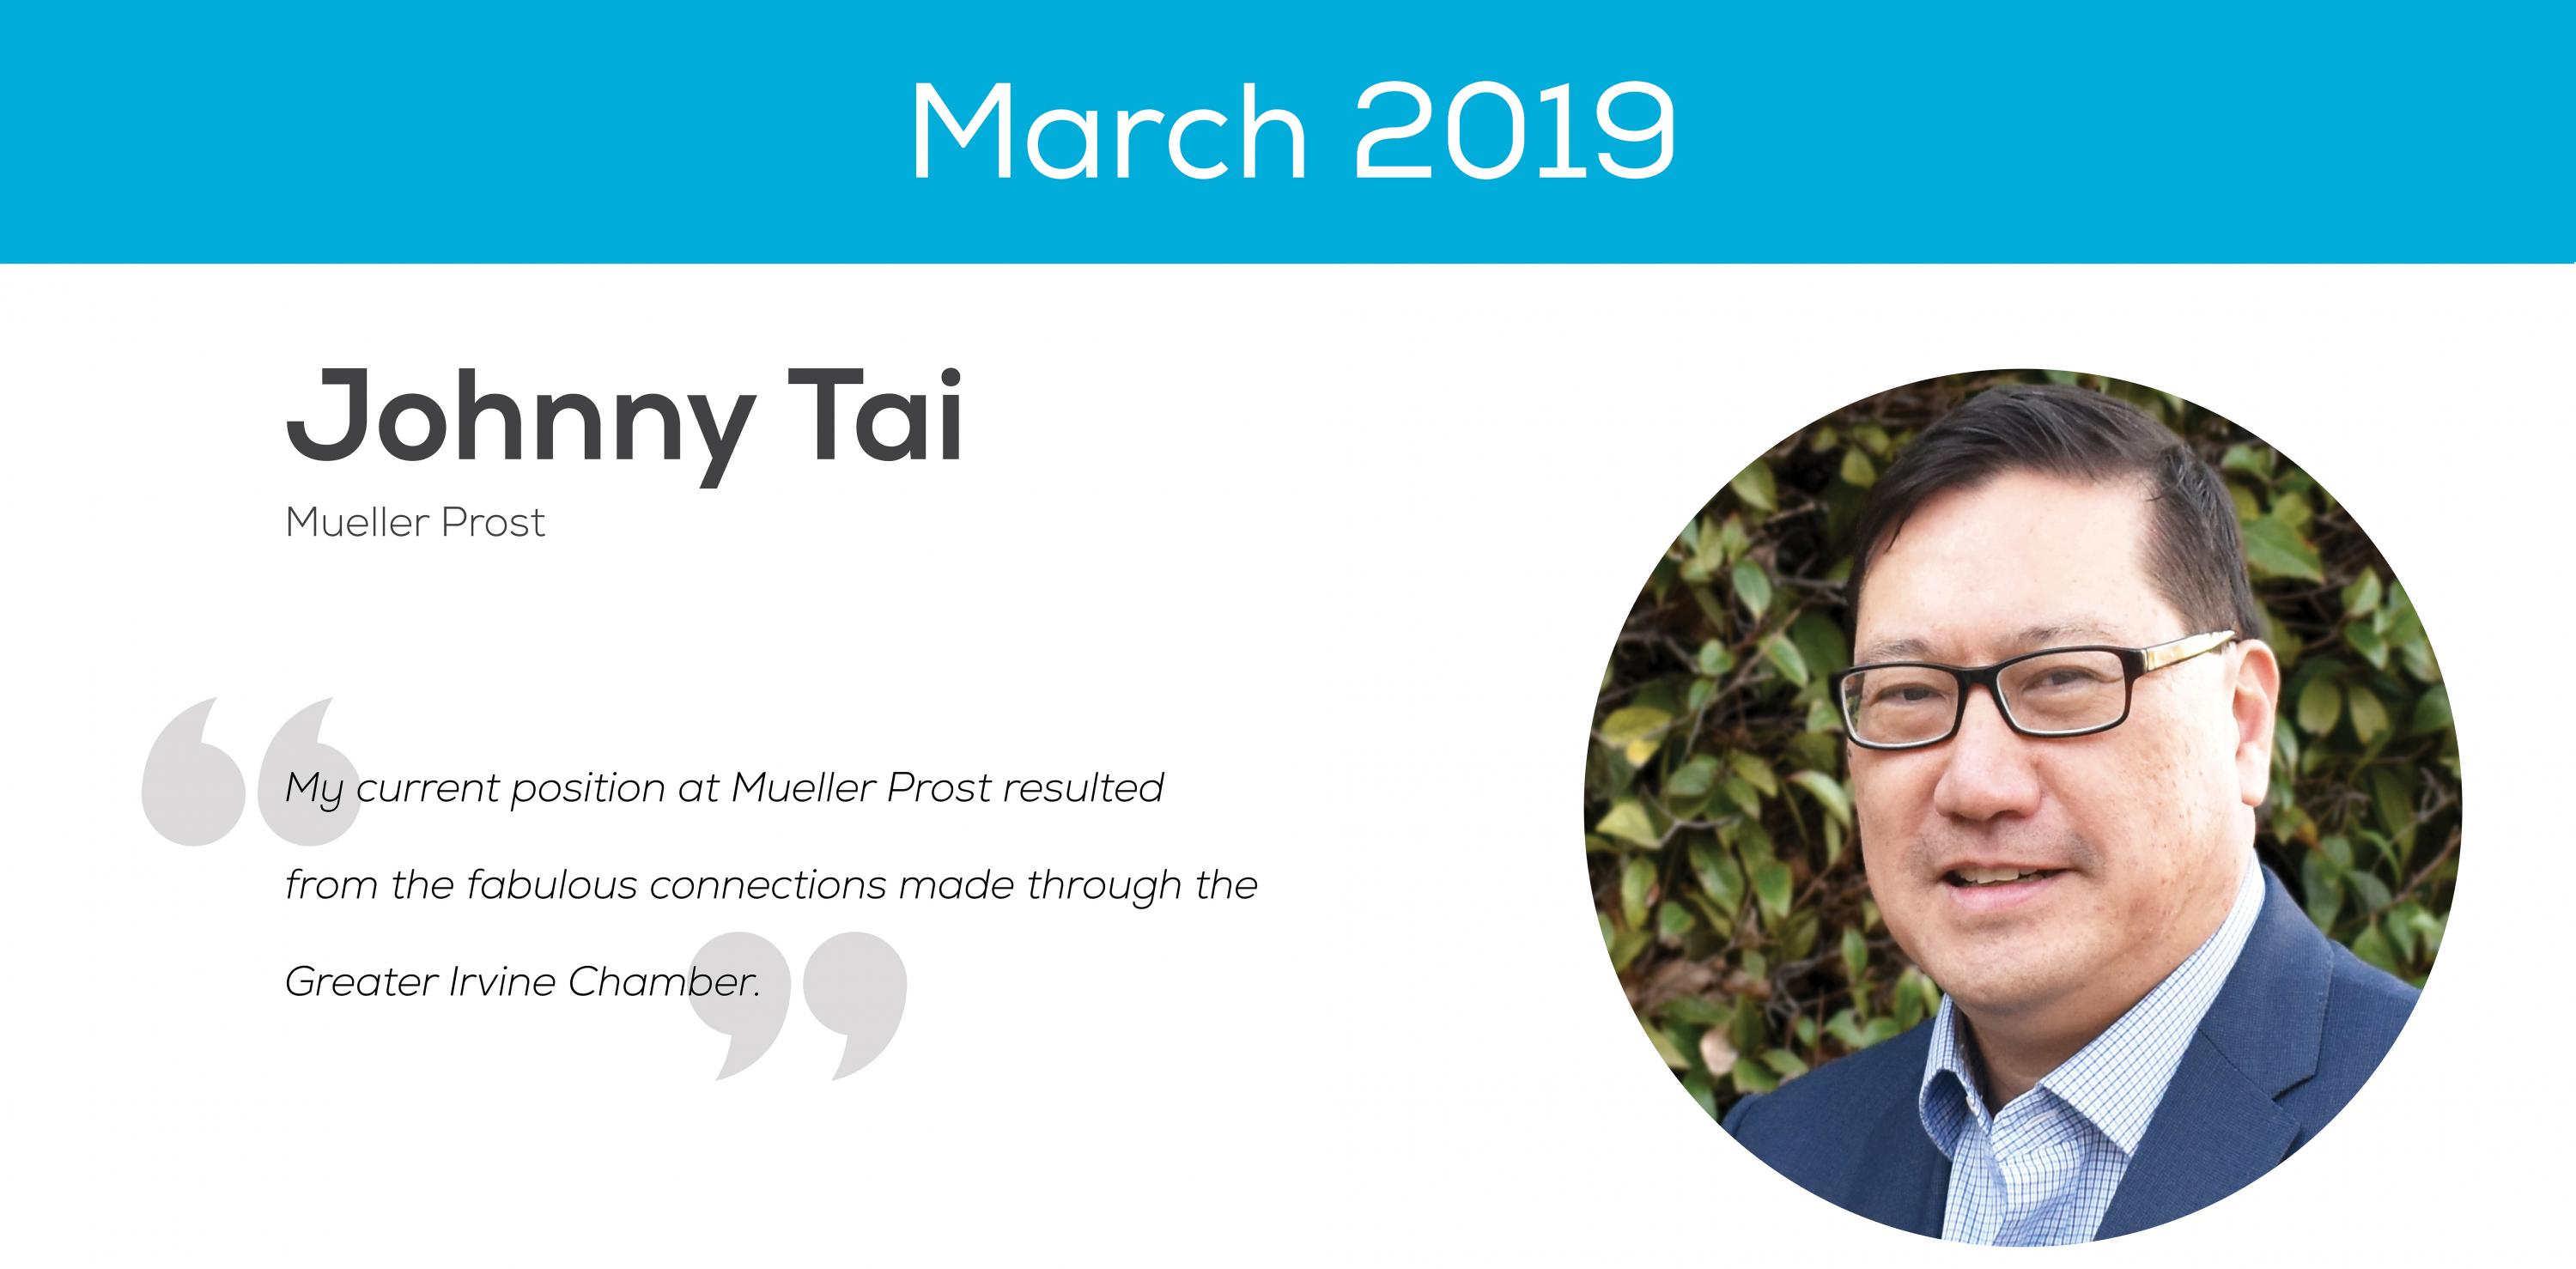 Johnny Tai March 2019 Ambassador of the Month